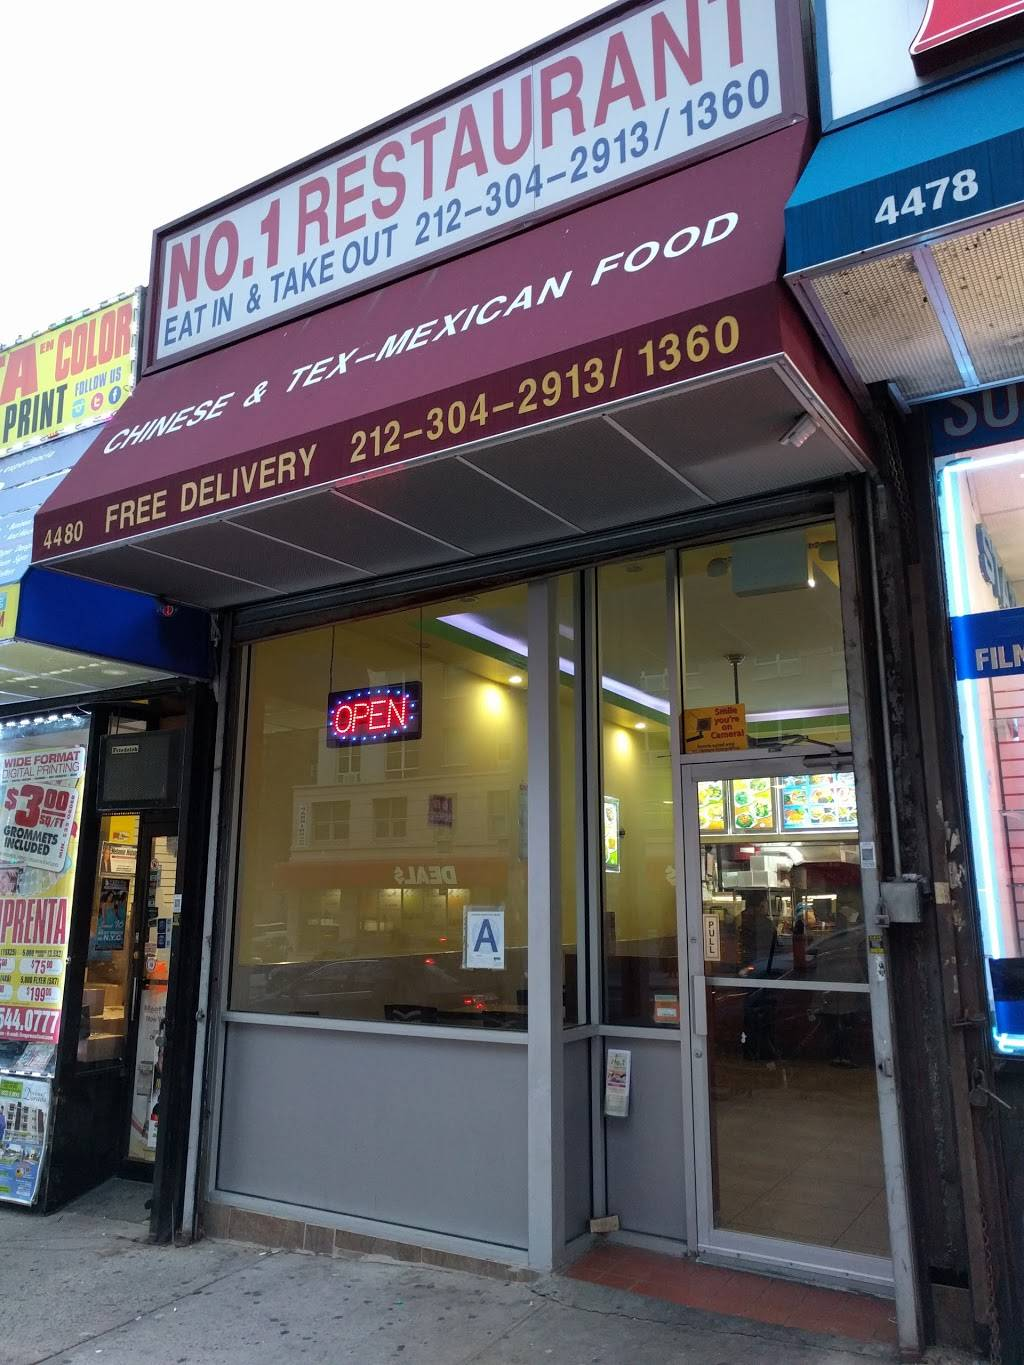 New No.1 Tex-Mex   meal delivery   4480 Broadway, New York, NY 10040, USA   2123041360 OR +1 212-304-1360